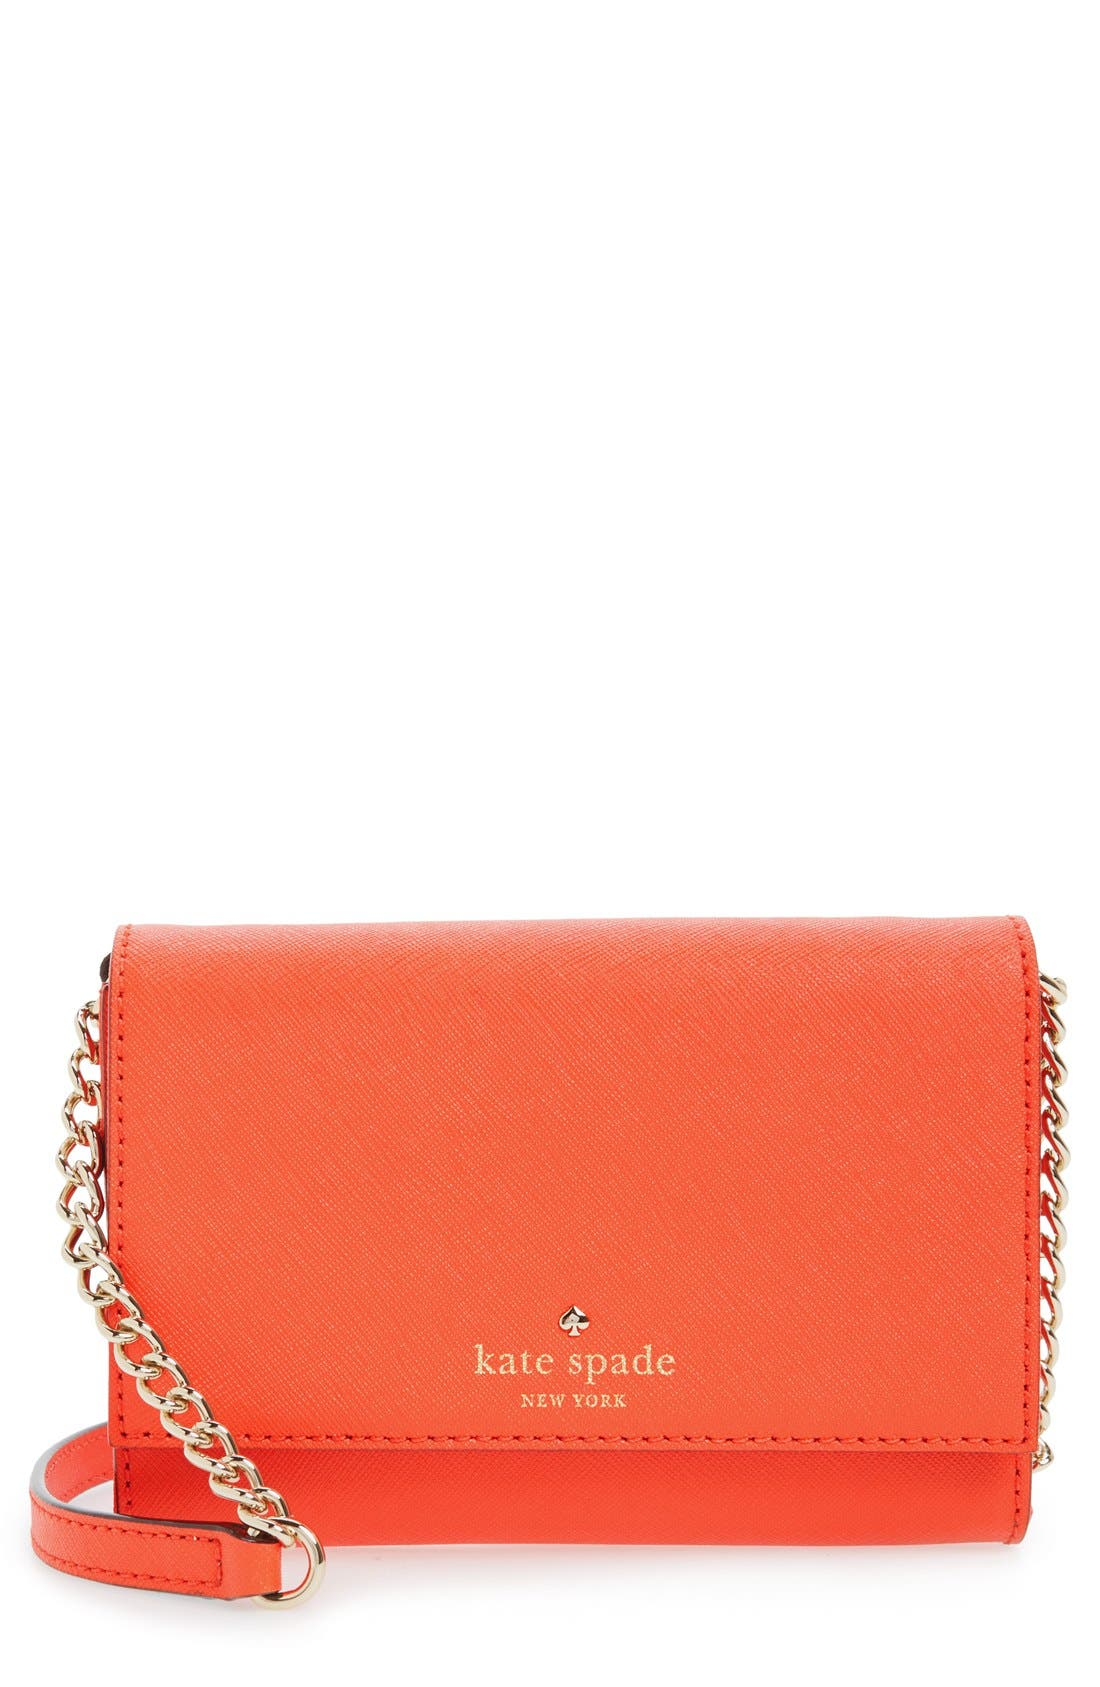 Main Image - kate spade new york 'cedar street - cami' crossbody bag